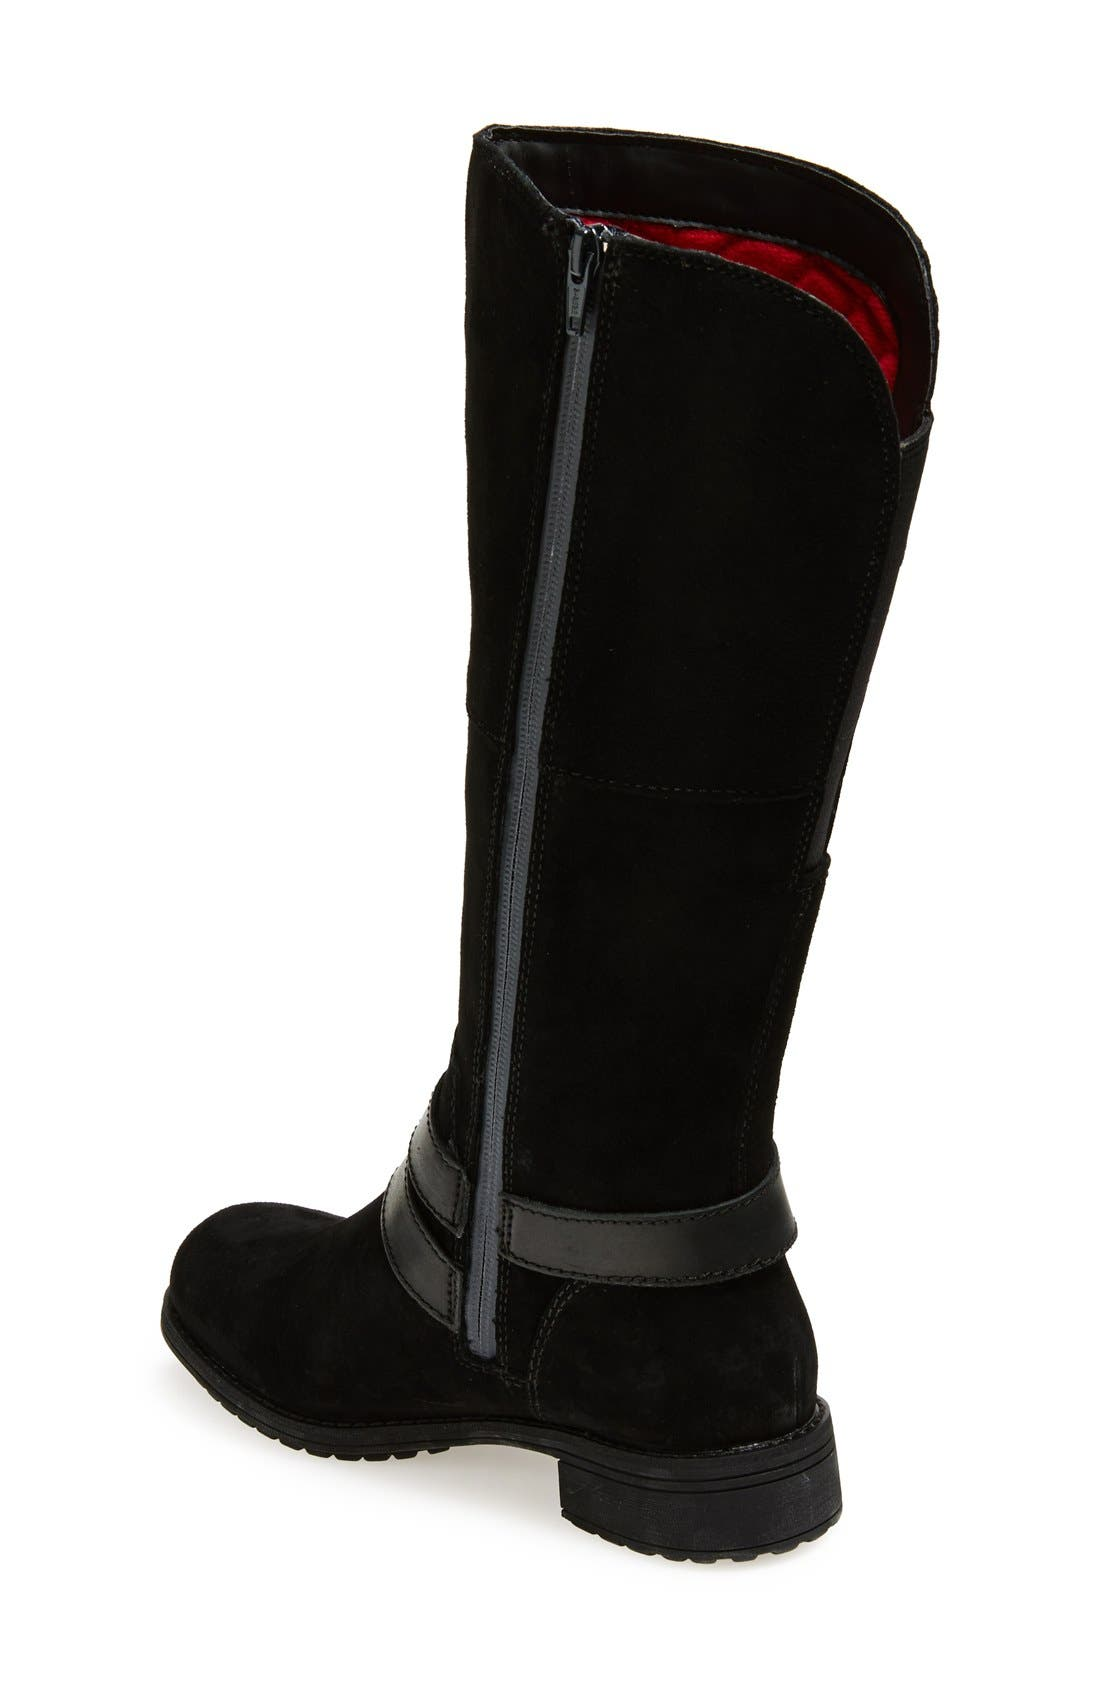 THE NORTH FACE,                             'Bridgeton' Waterproof Heatseeker<sup>™</sup> Insulated Riding Boot,                             Alternate thumbnail 2, color,                             001